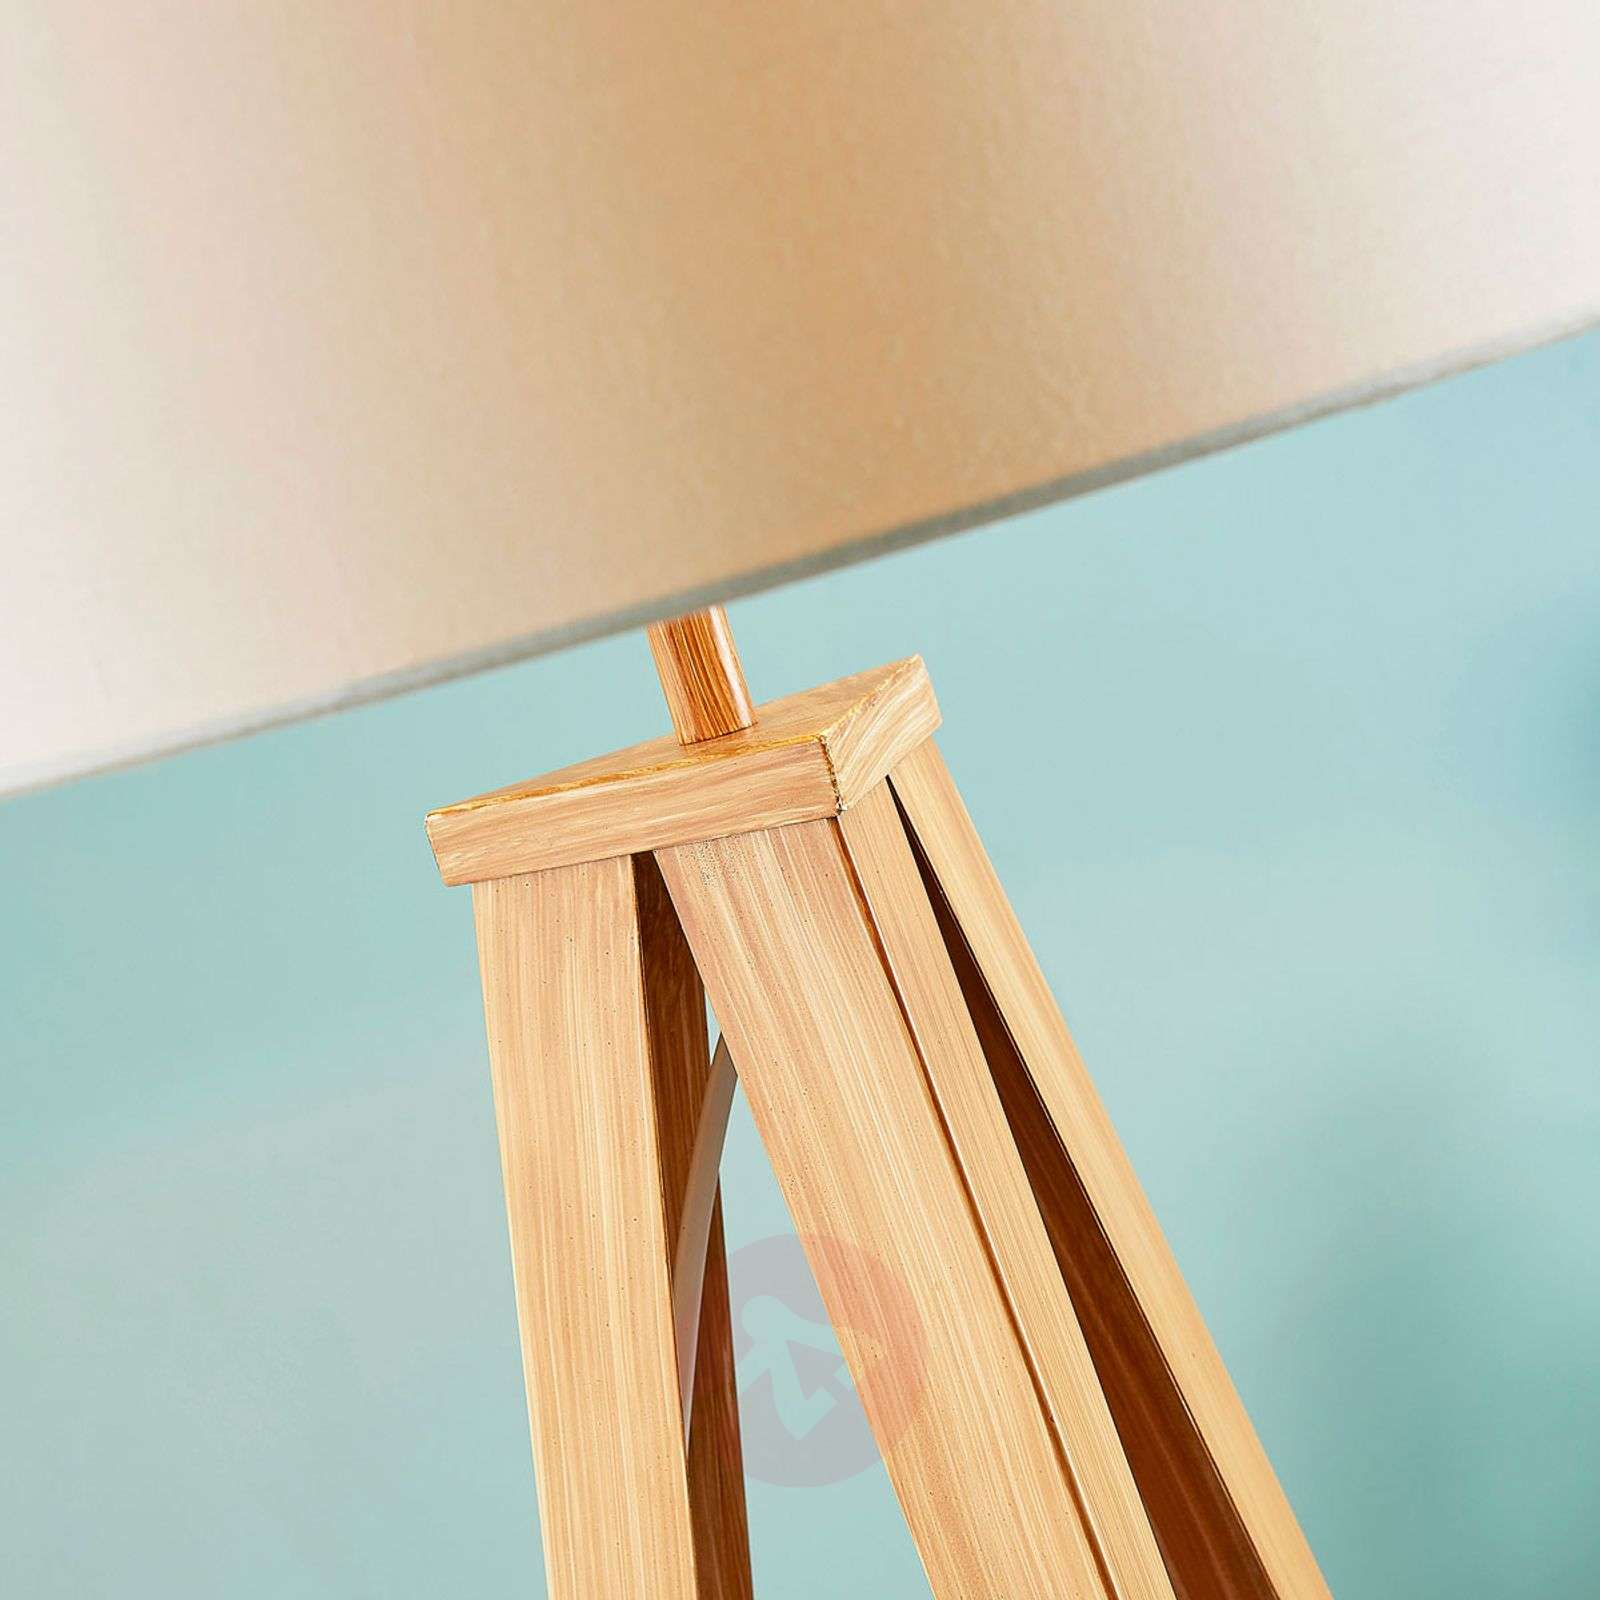 Benik floor lamp with wood-coloured tripod frame-9621286-02